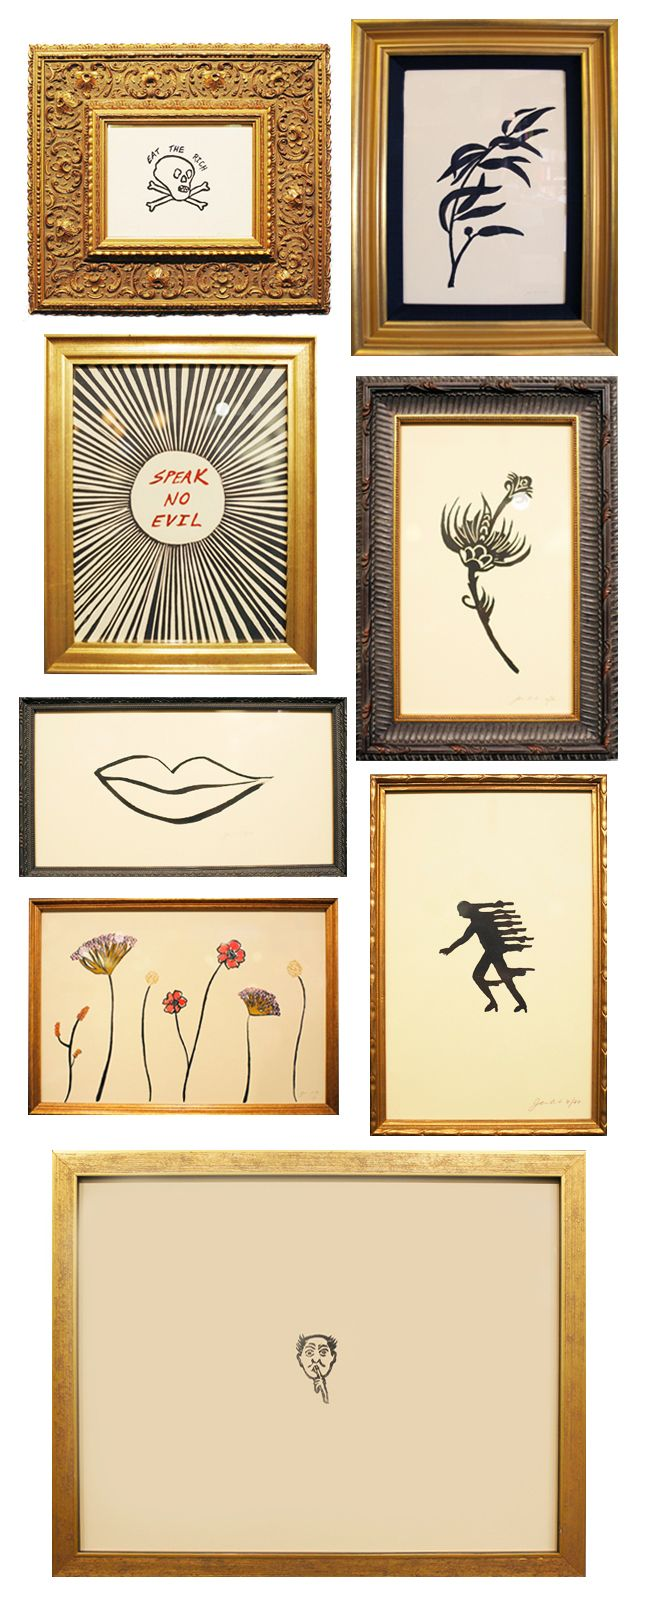 Love the doodles in the ornate frames. Perfect mix of casual ...